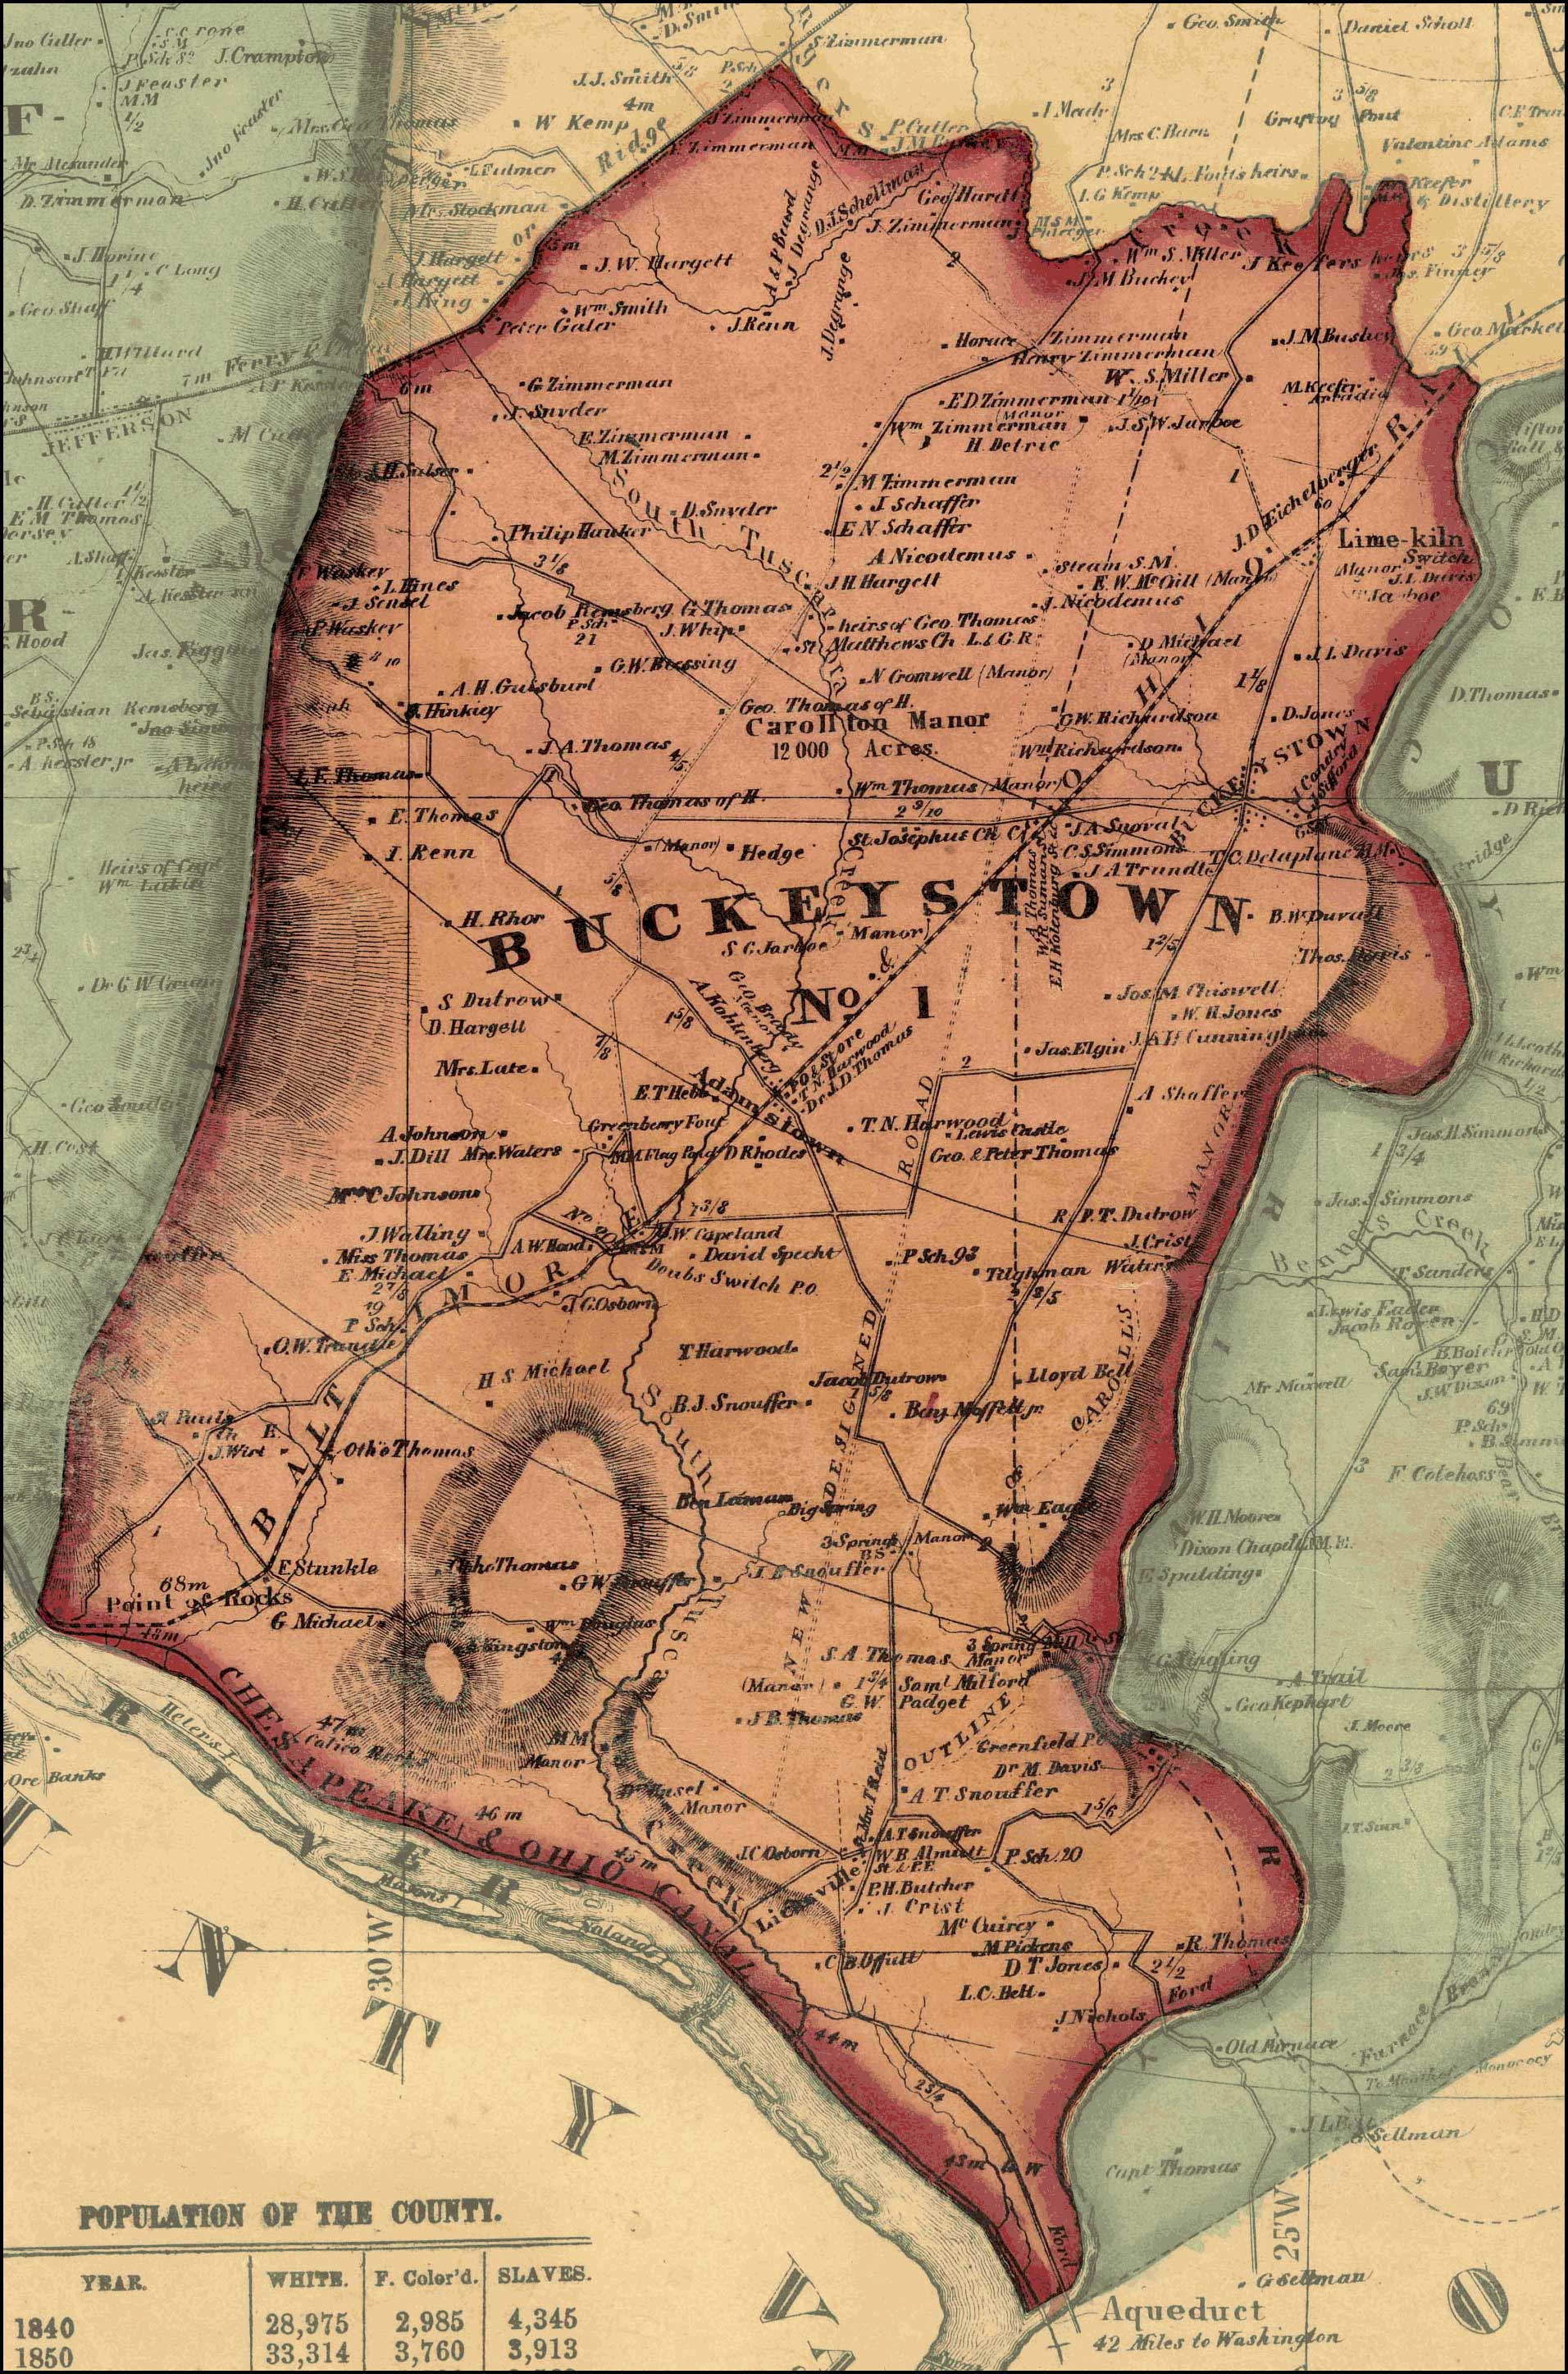 Isaac Bond, Map of Frederick County, 1858, Library of Congress, MSA SC 1213-1-457